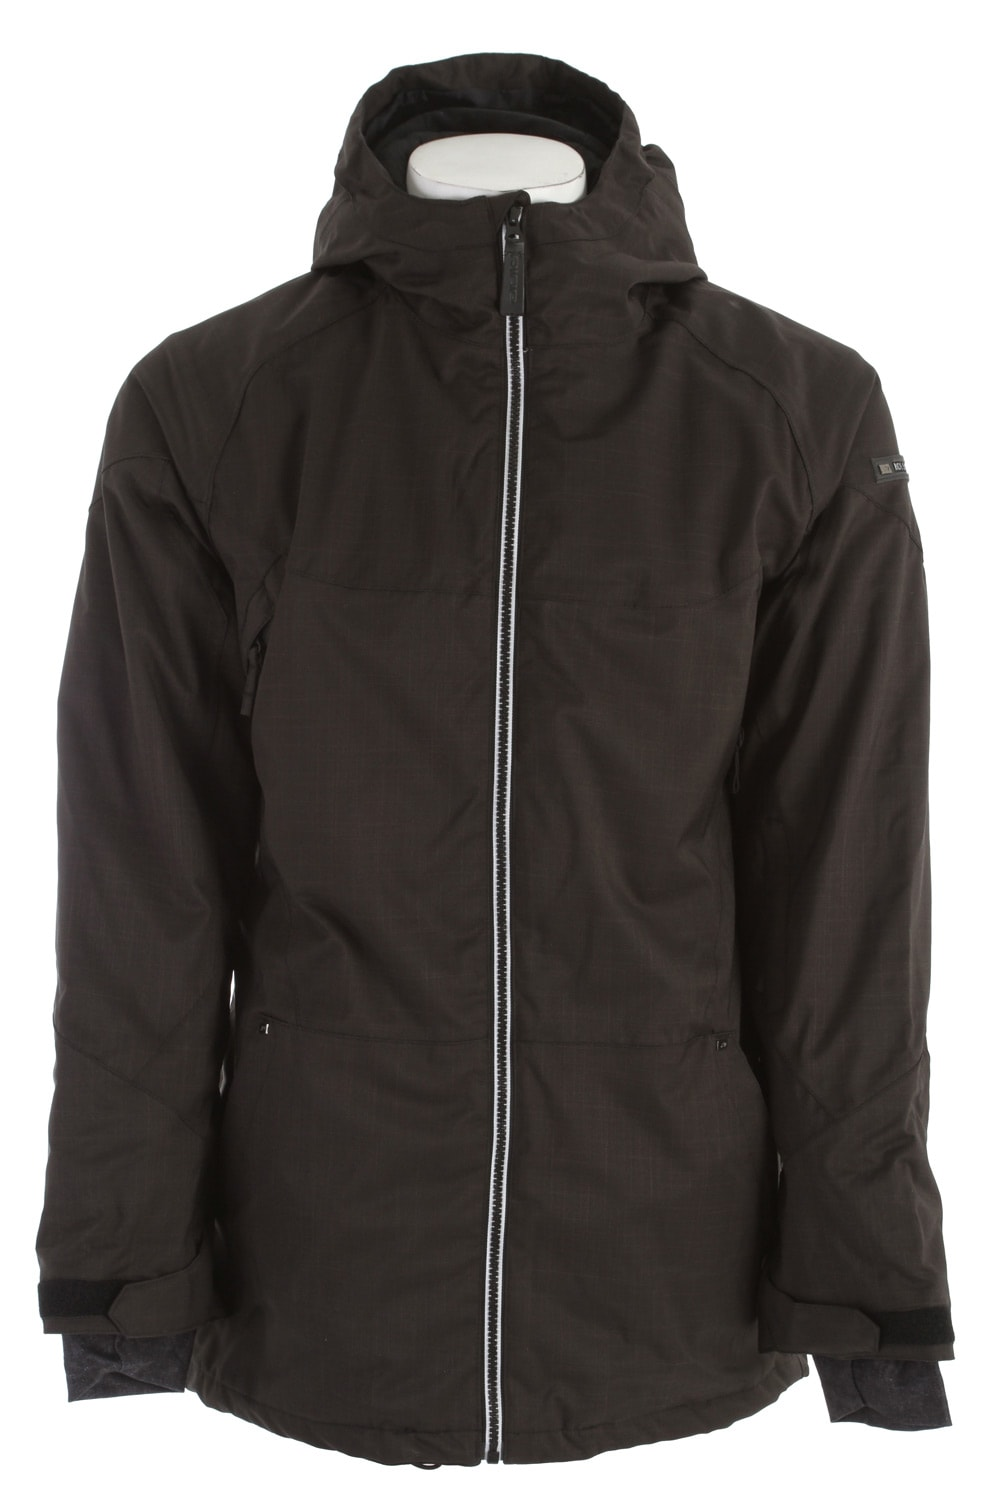 Shop for Ride Newport Insulated Snowboard Jacket Black - Men's